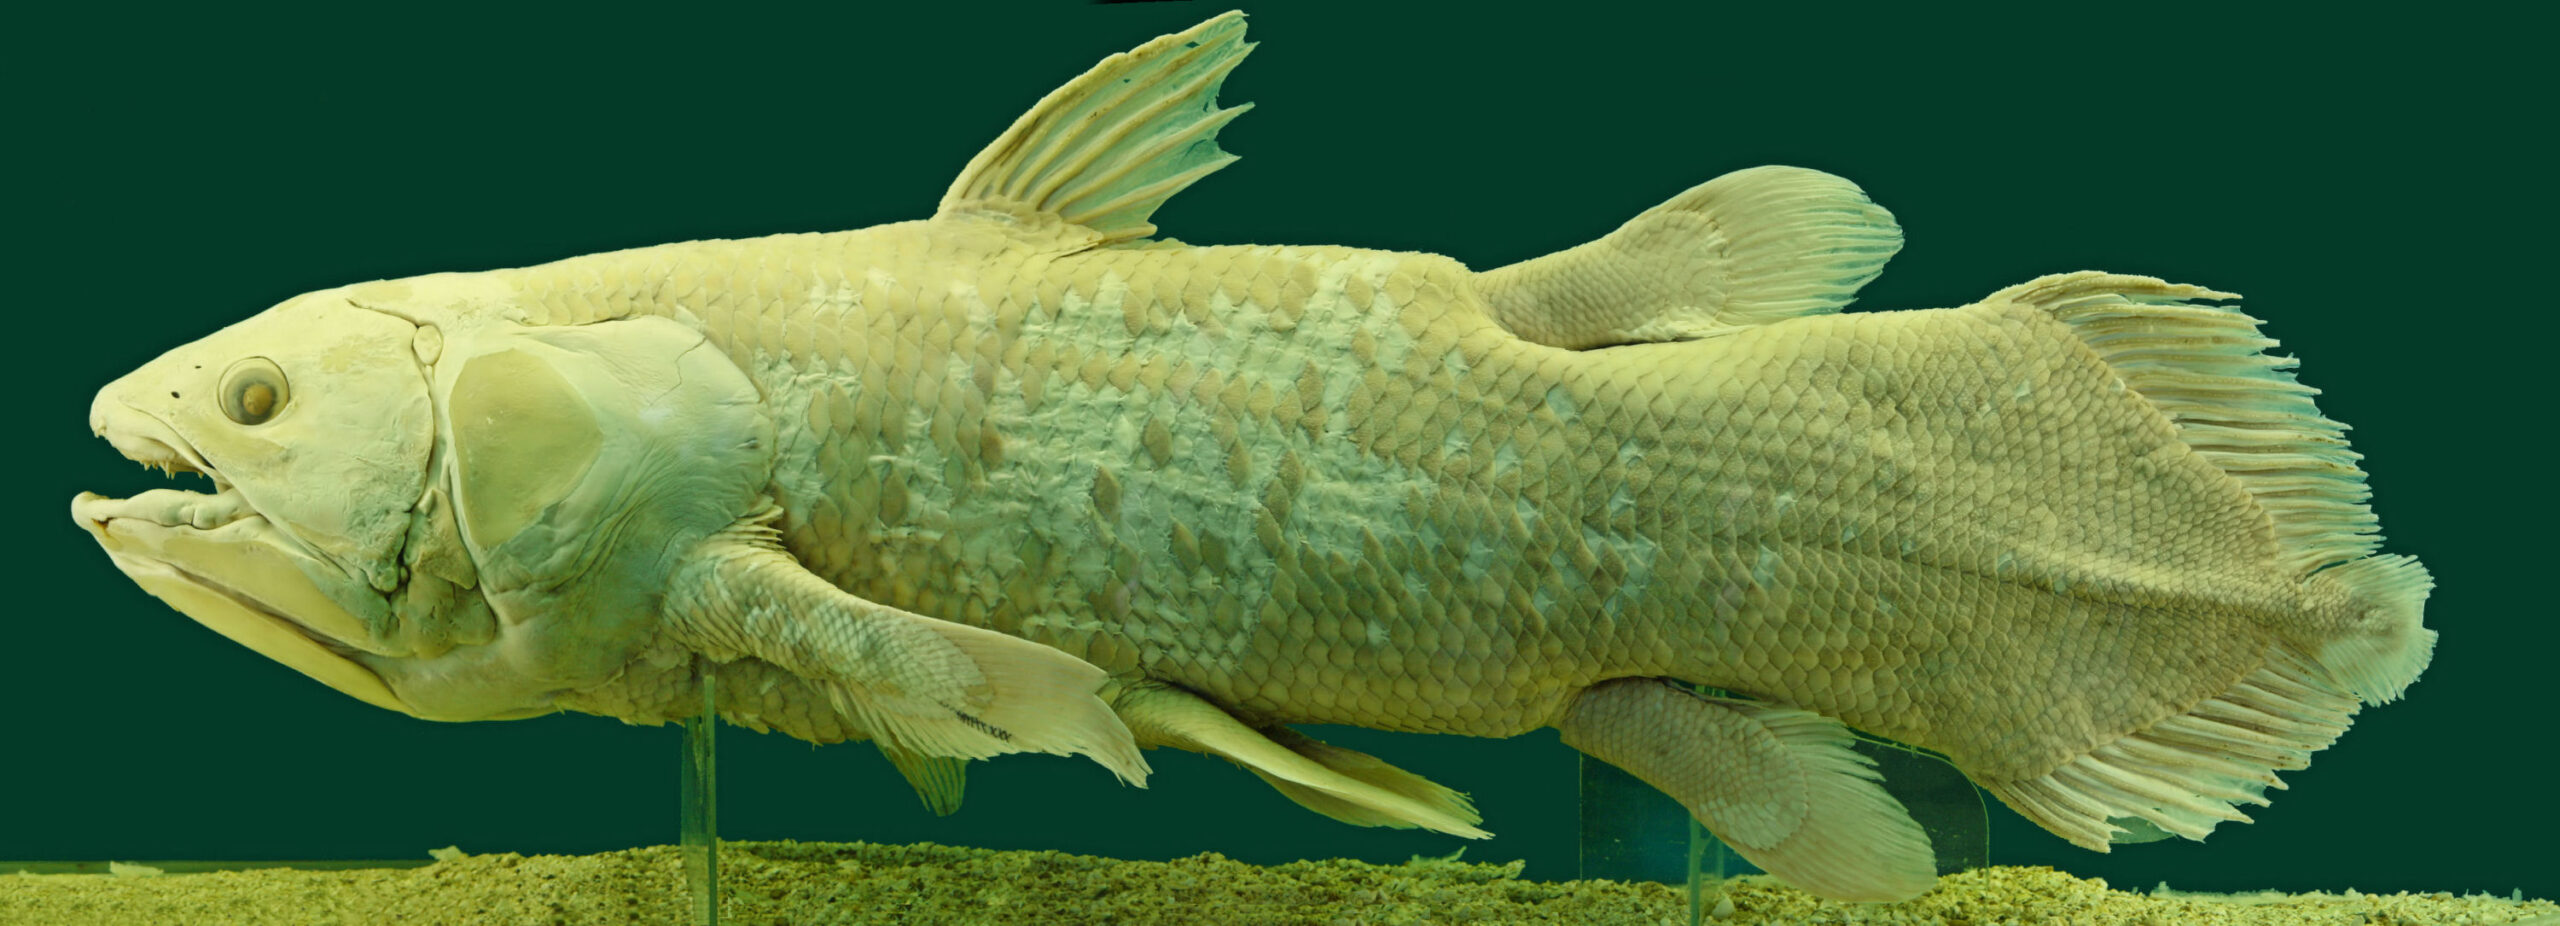 Critically endangered ancient fish relative has life a 100 year life span